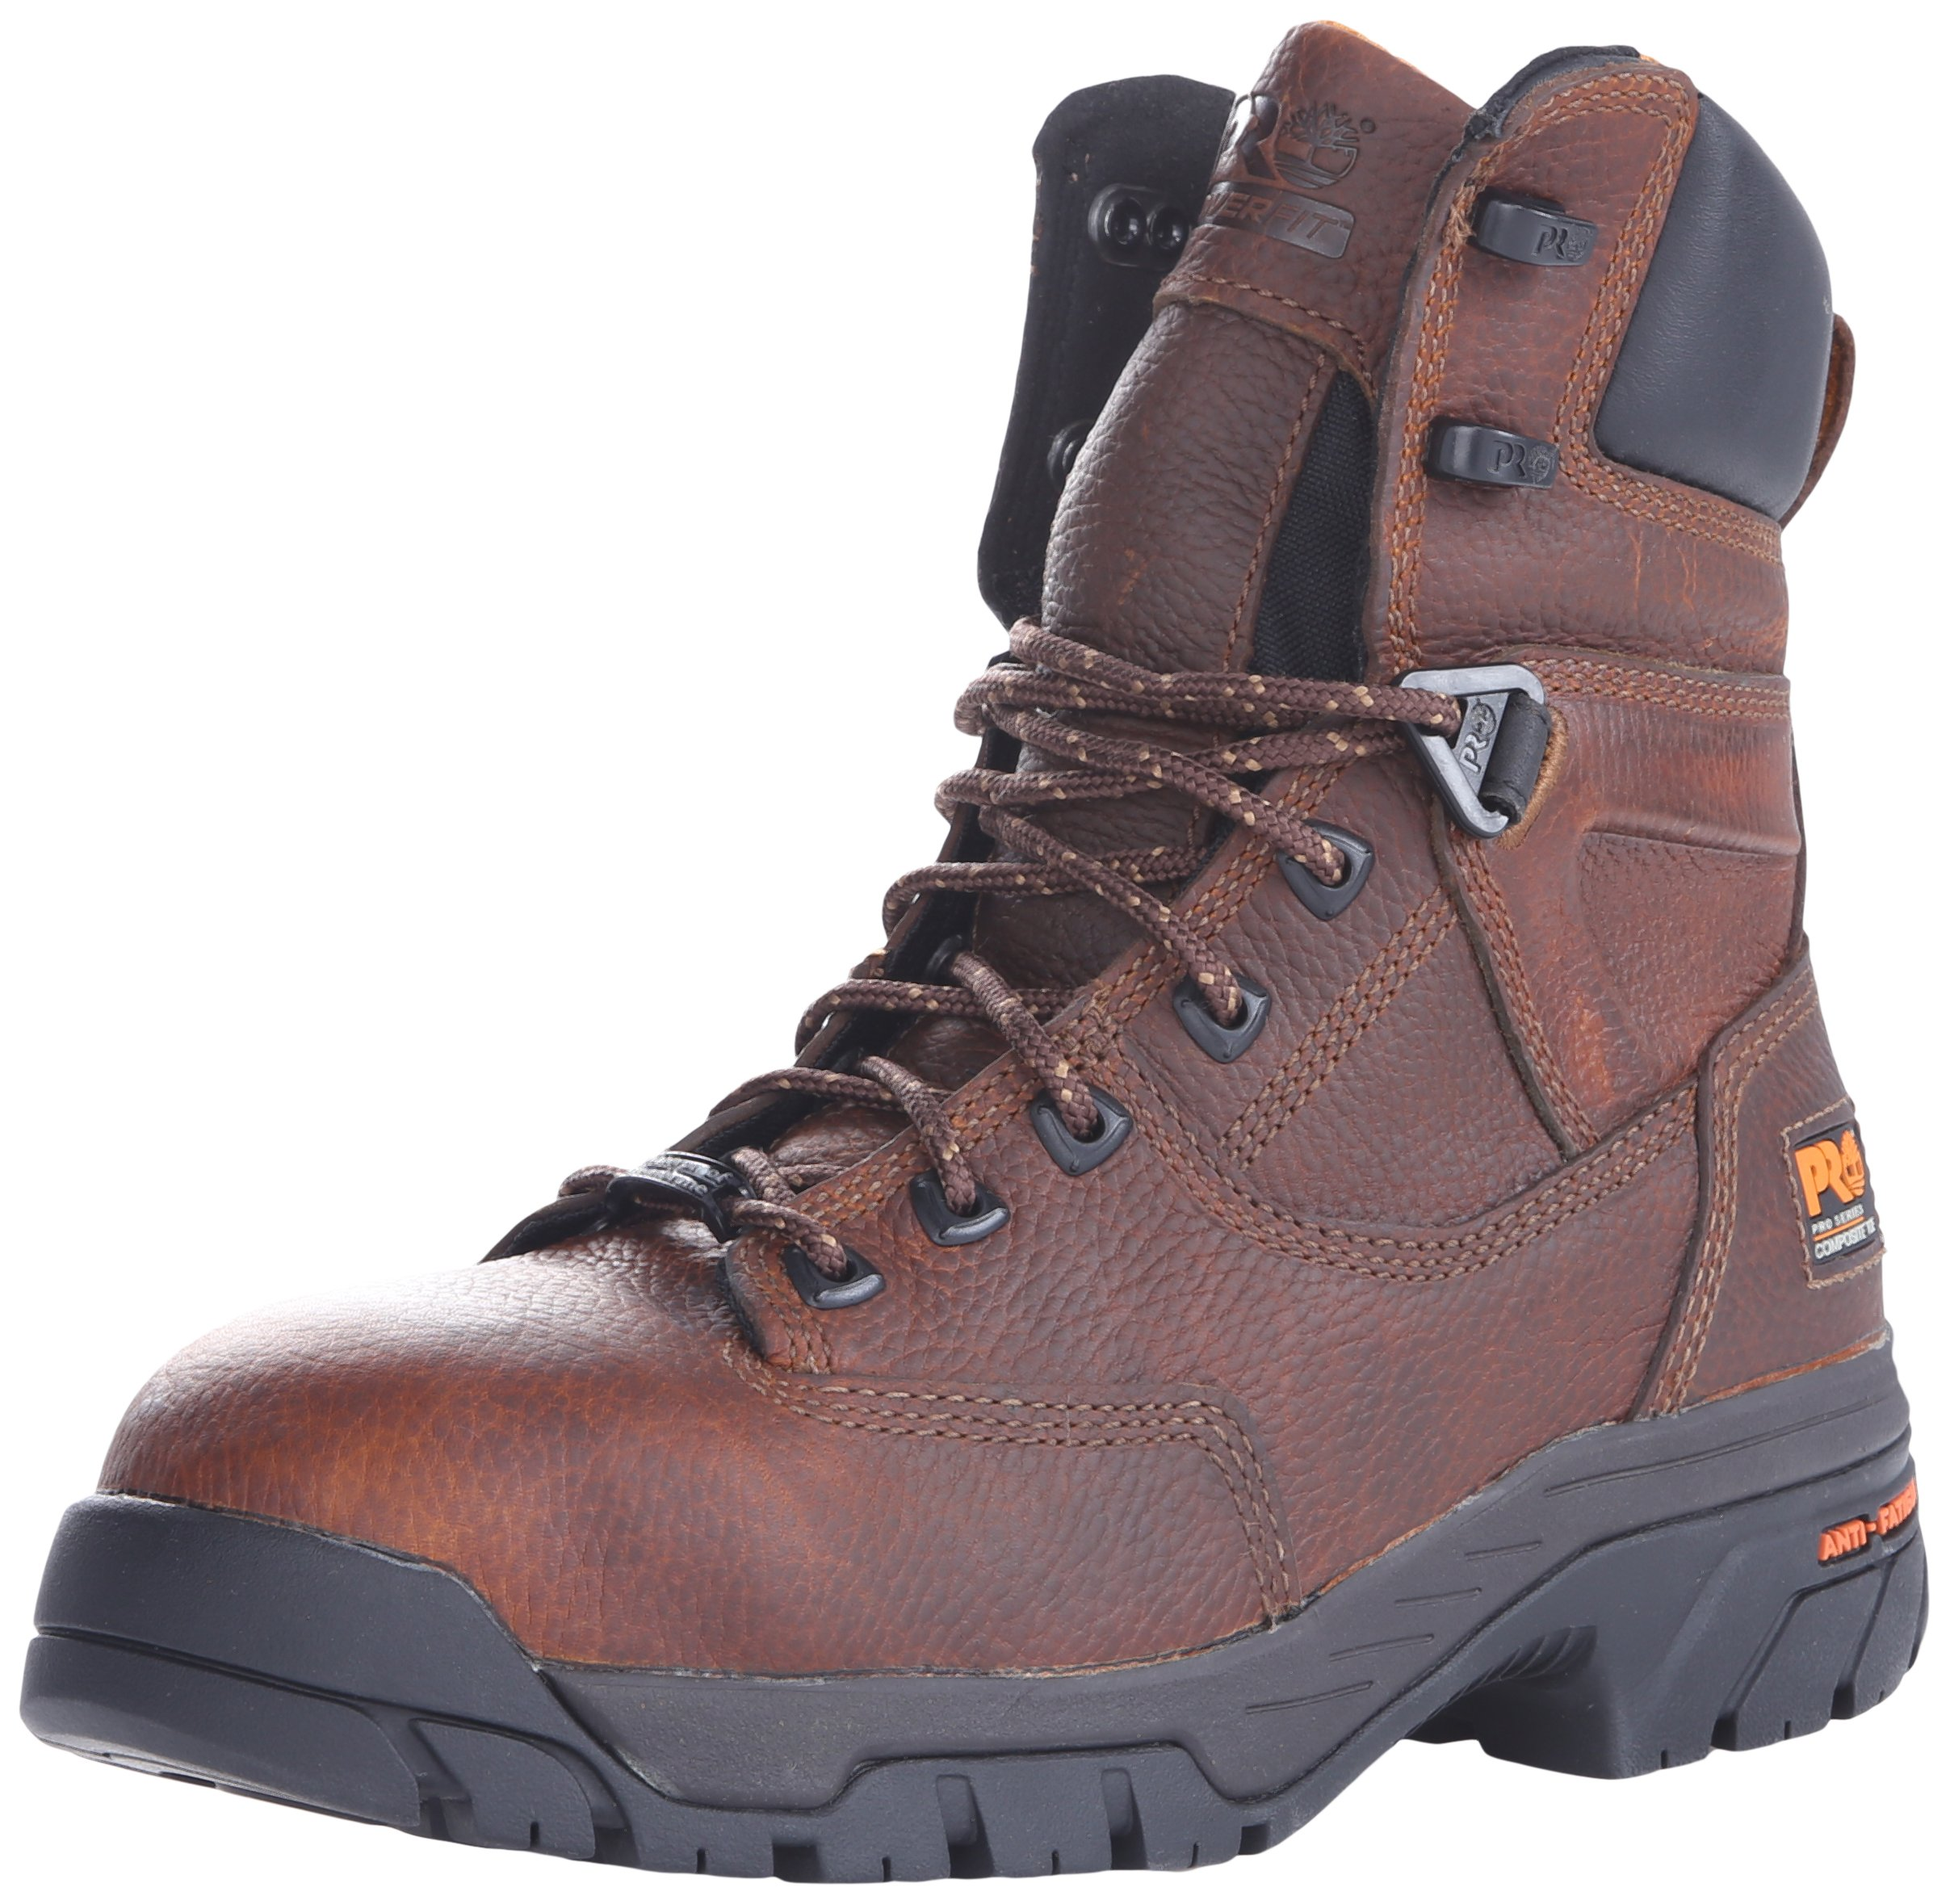 Timberland PRO Men's Helix 8 Inch Comp Toe Work Boot,Brown,9.5 M US